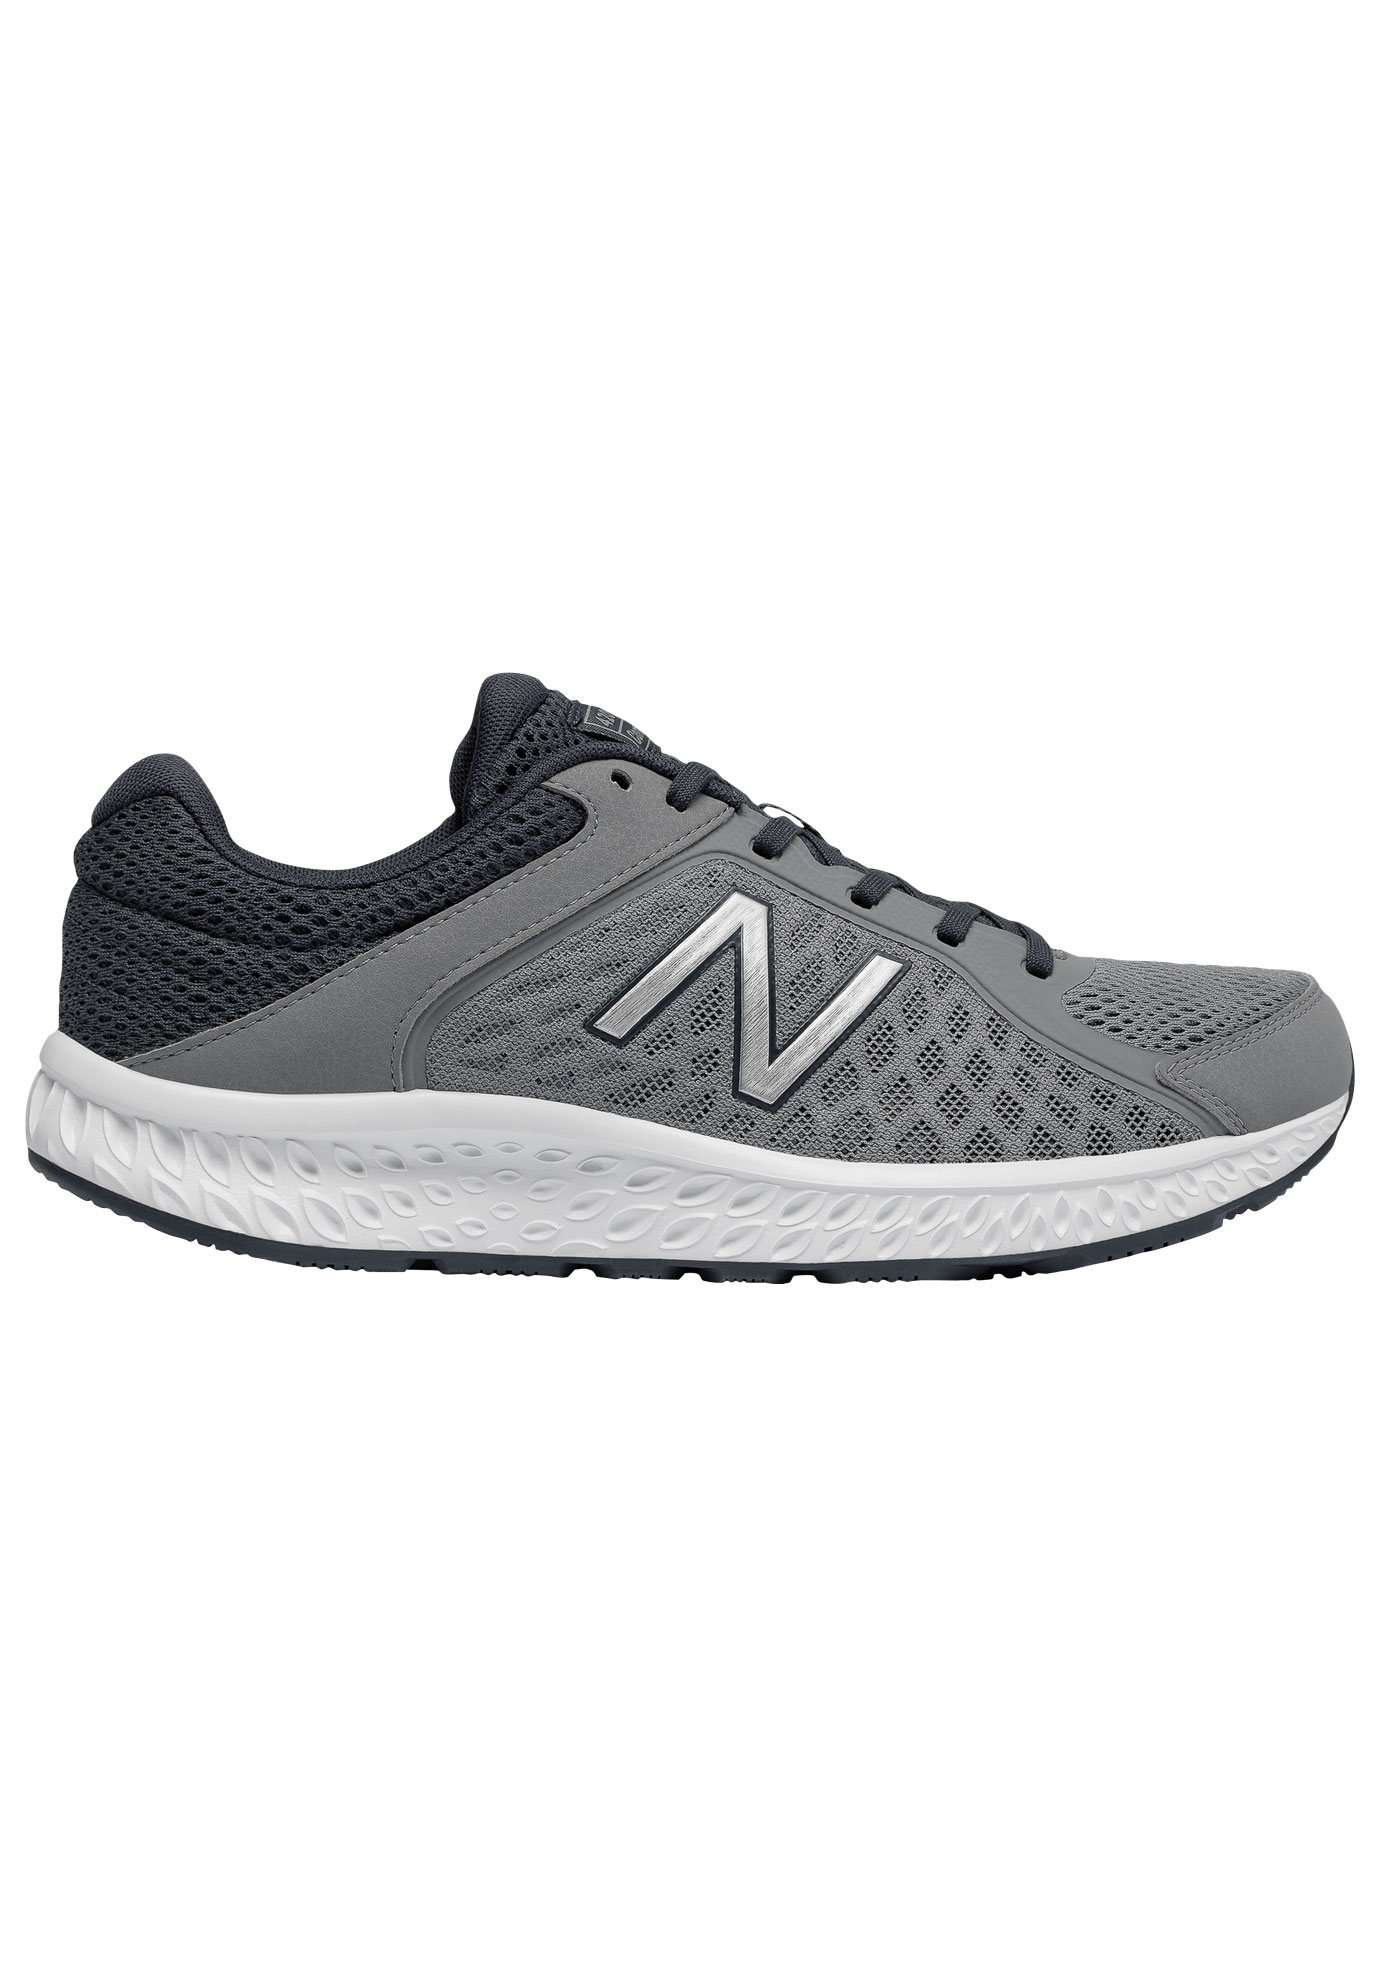 New Balance® 420v4 Sneakers,